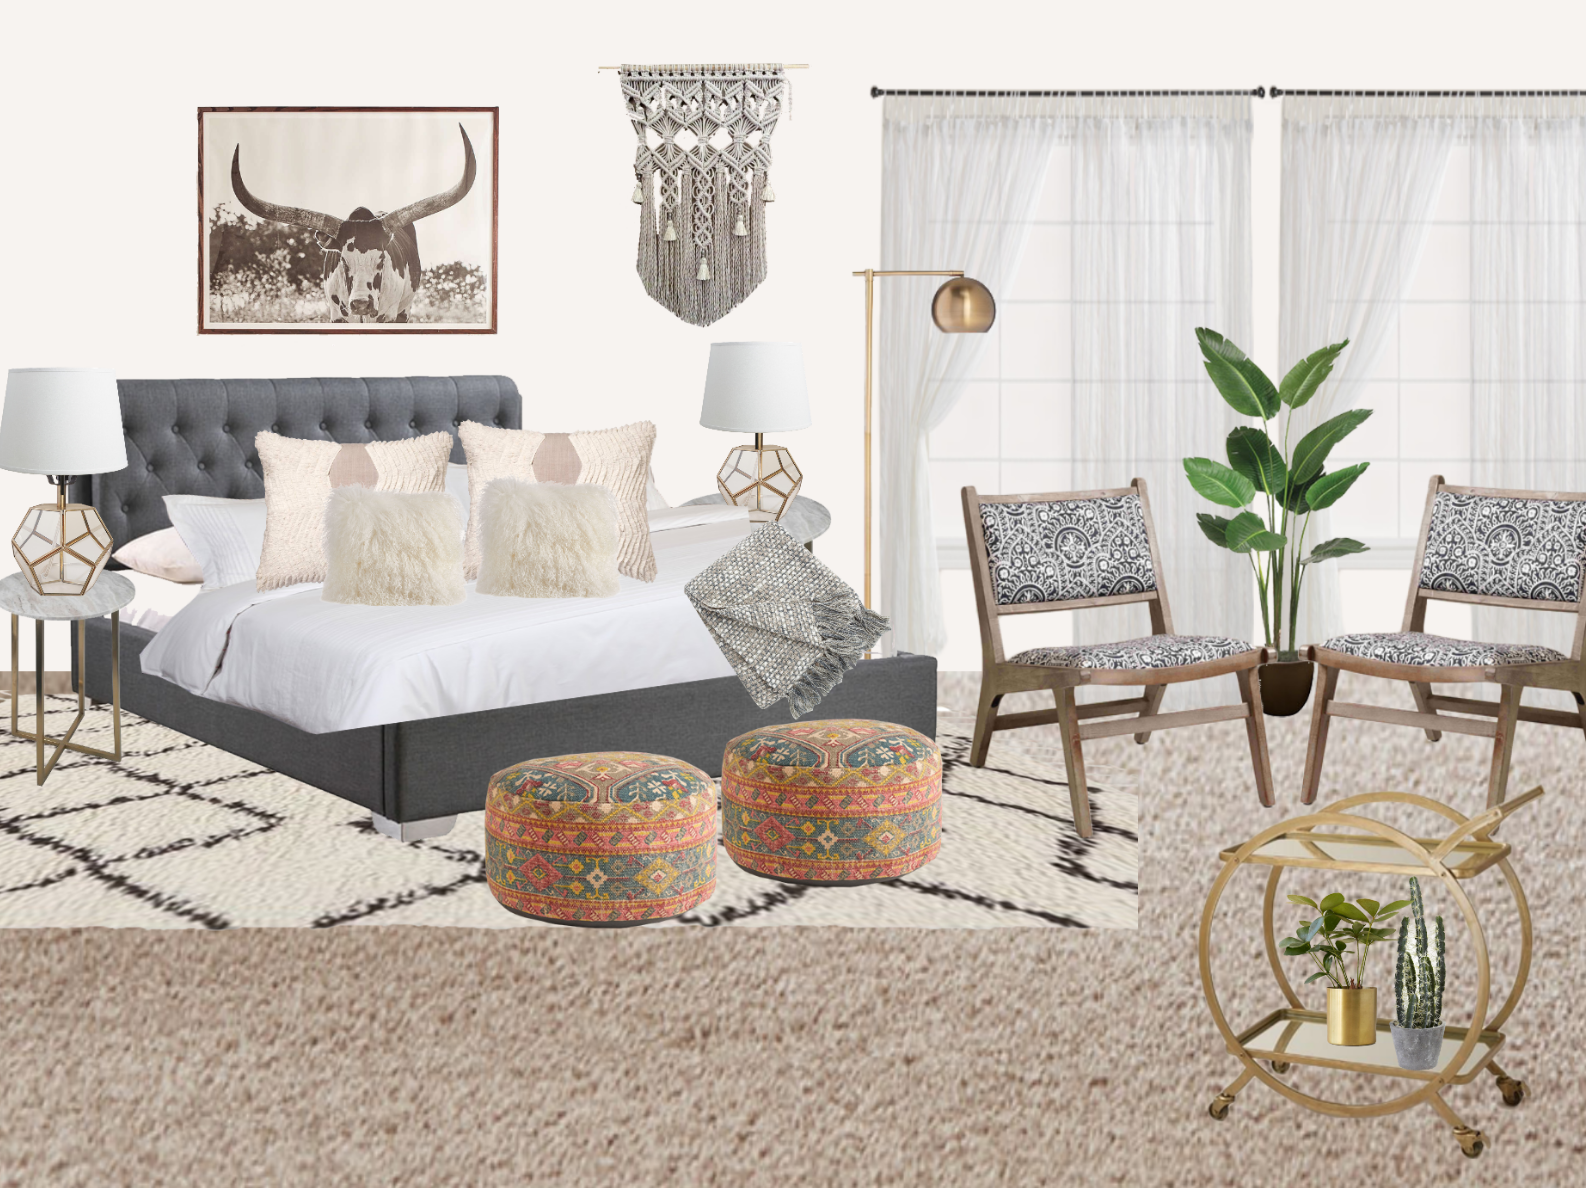 Decorist Review: Master Bedroom Makeover - Part 1 | Gypsy Tan